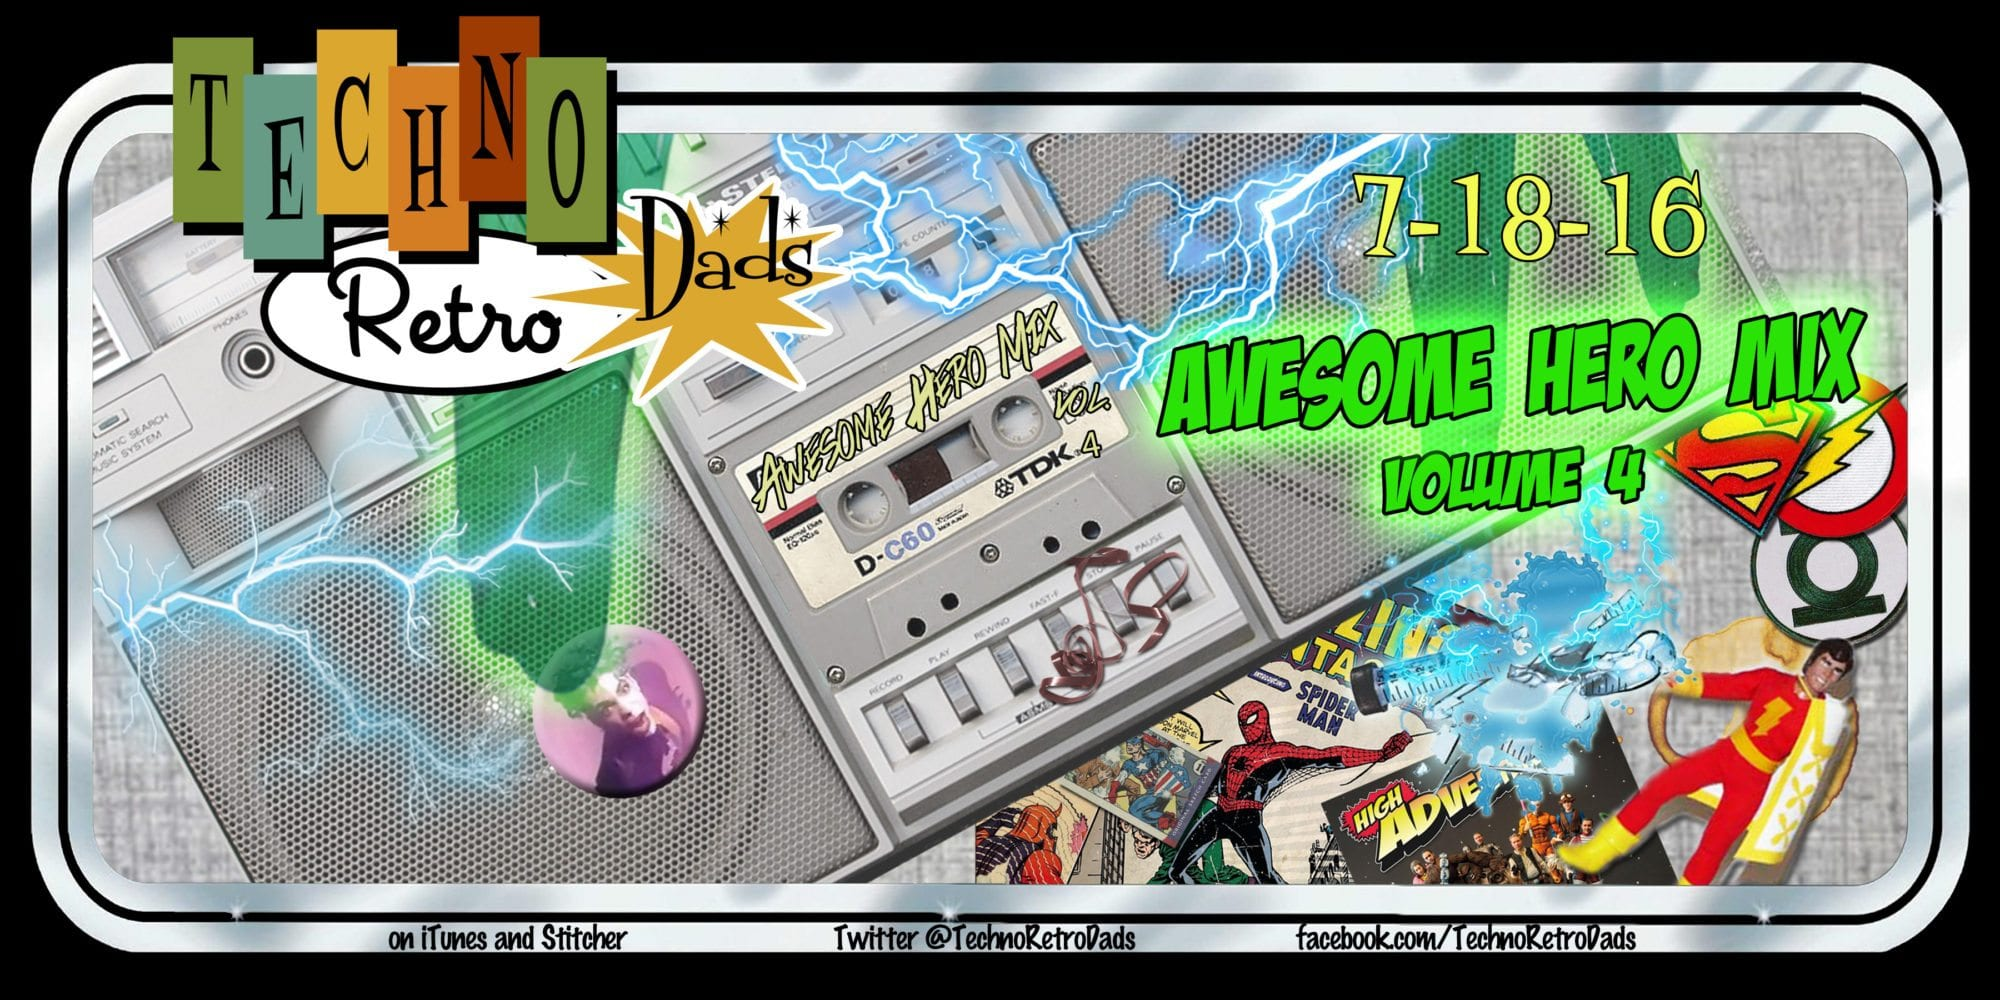 Awesome Hero Mix Vol 4 TechnoRetro Dads